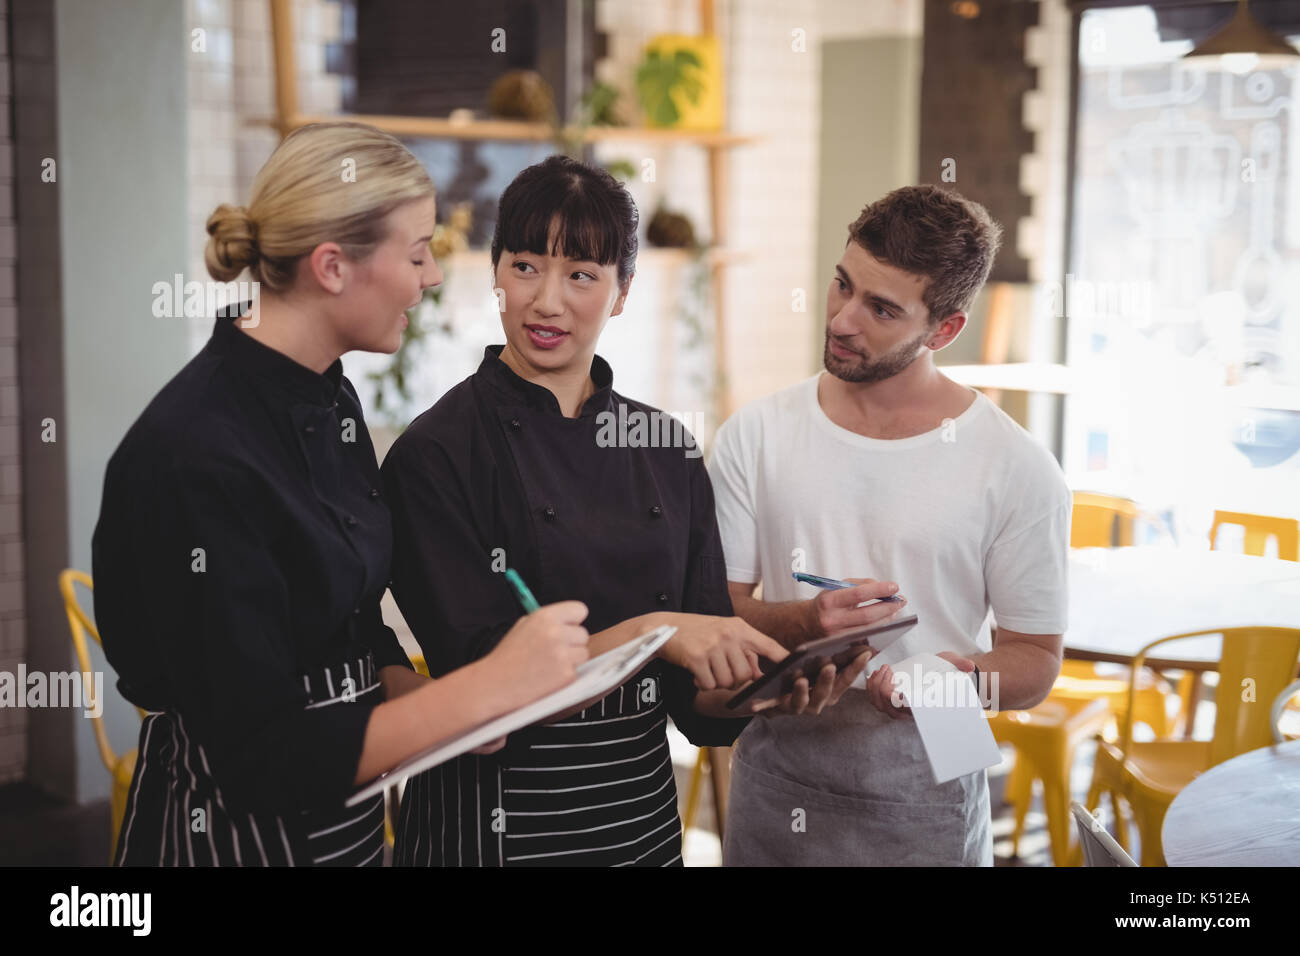 Young wait staff discussing over tablet computer while standing at coffee shop - Stock Image